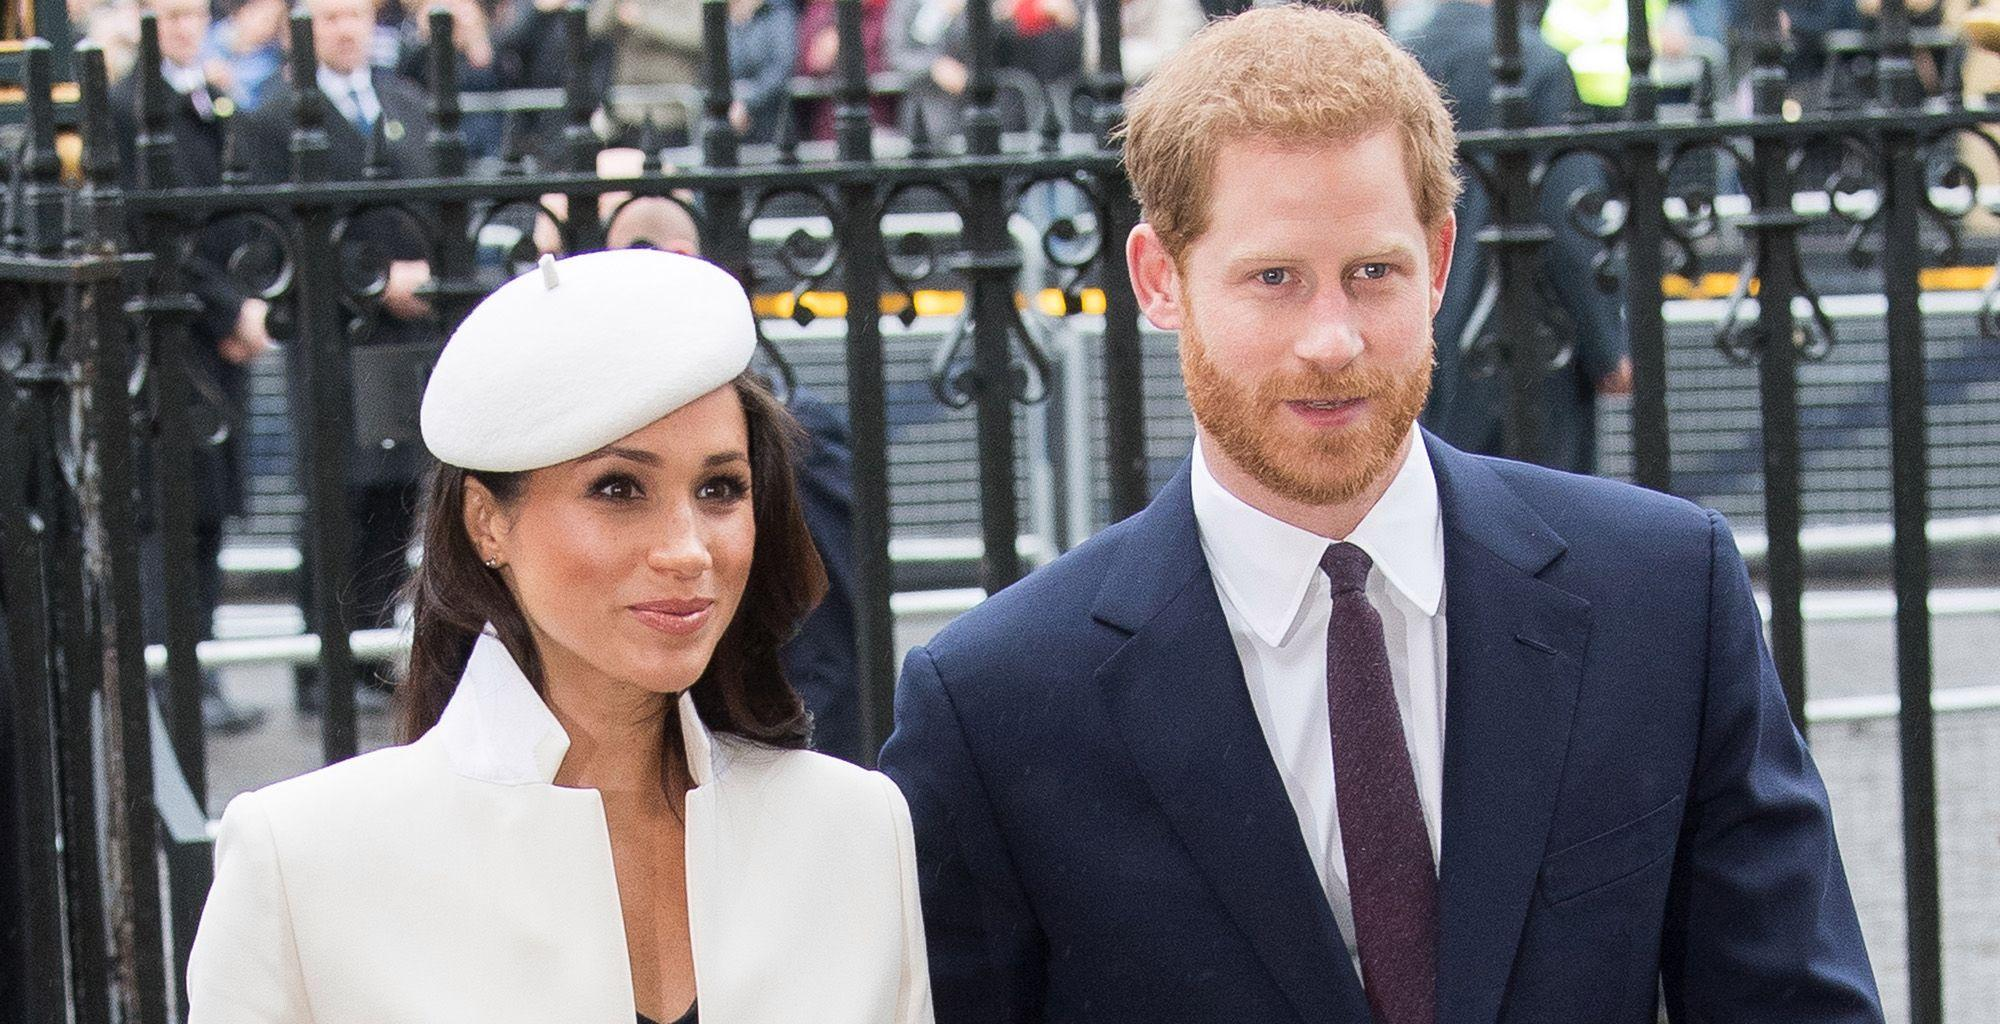 President Donald Trump Got The Clap-Back Heard Around The World From Prince Harry And Meghan Markle With This Statement